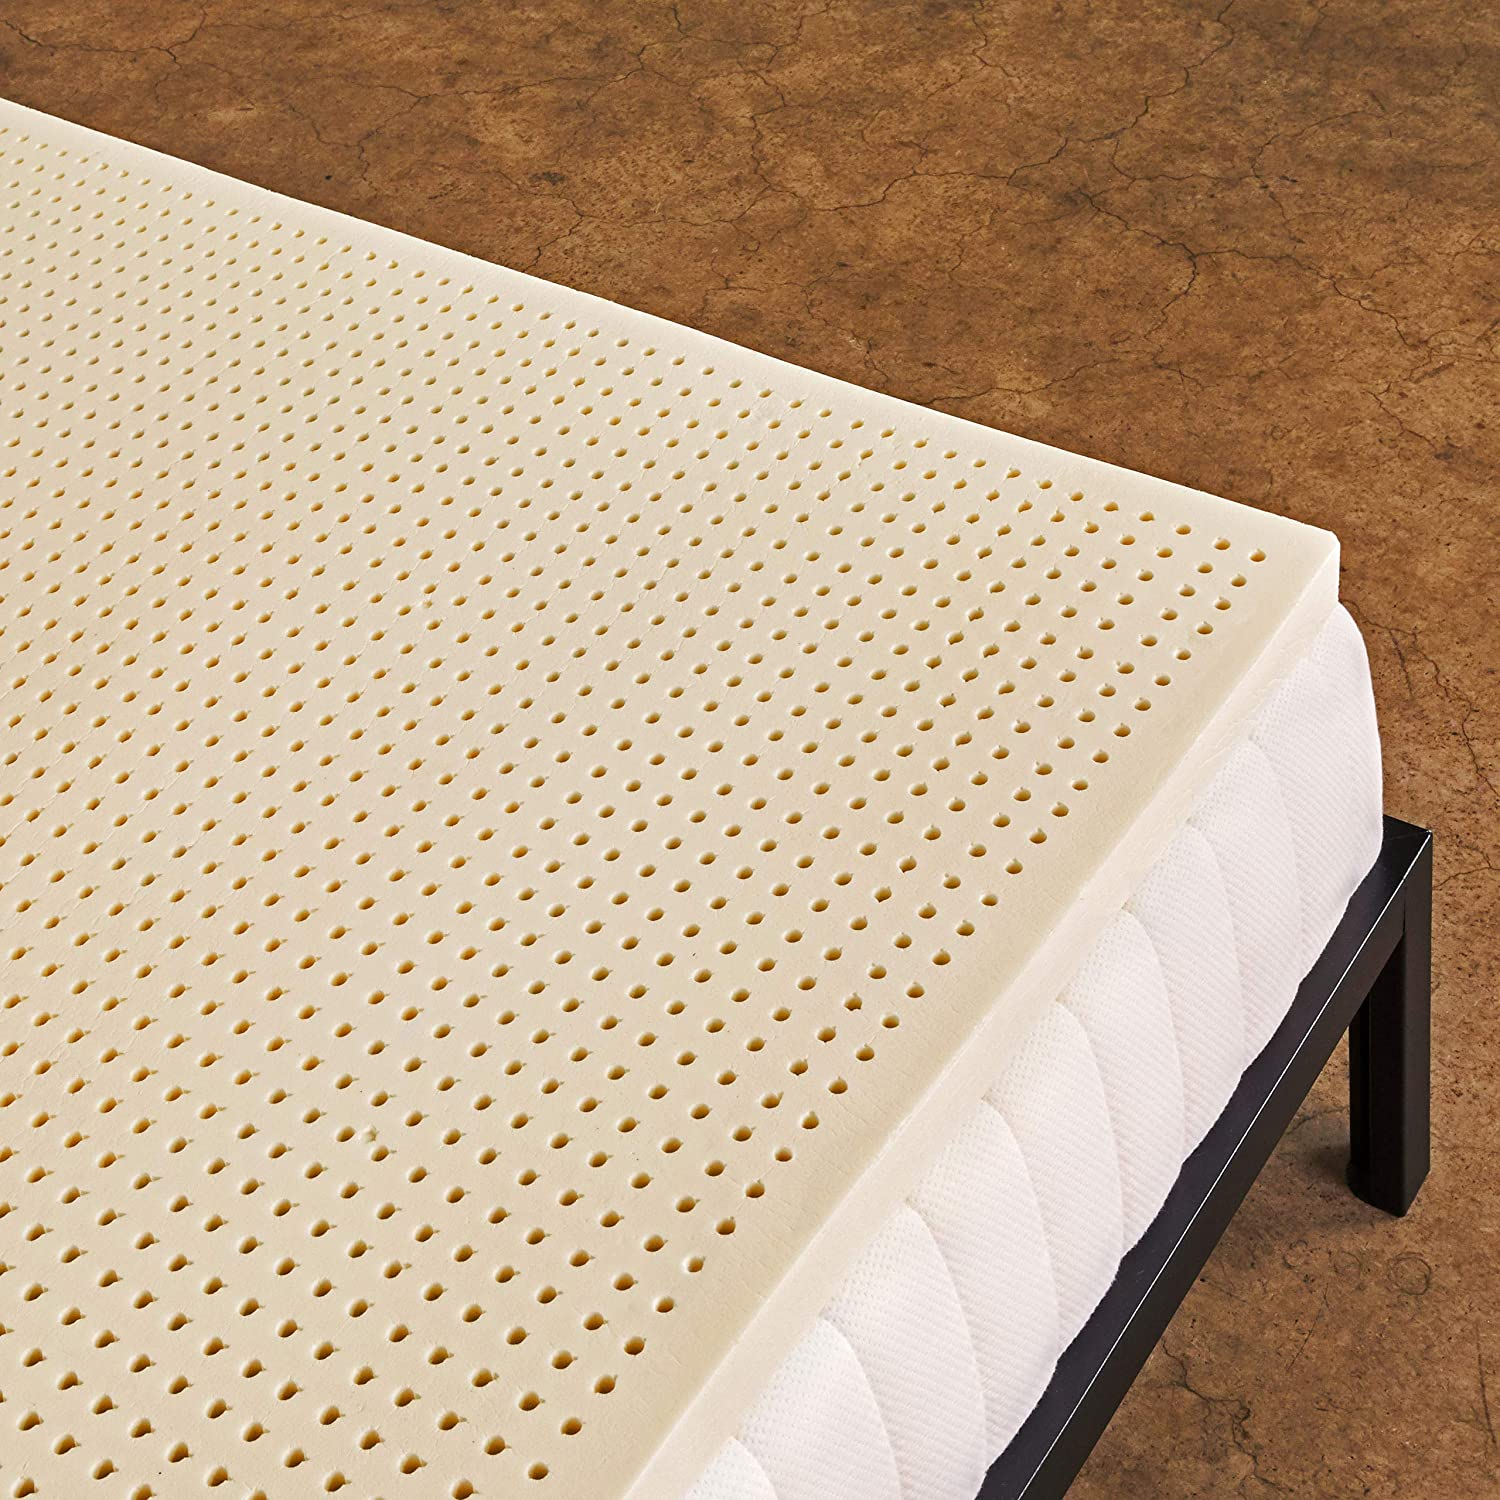 Pure Green 100% Natural Latex Mattress Topper - Medium Firmness - 2 Inch - Queen Size